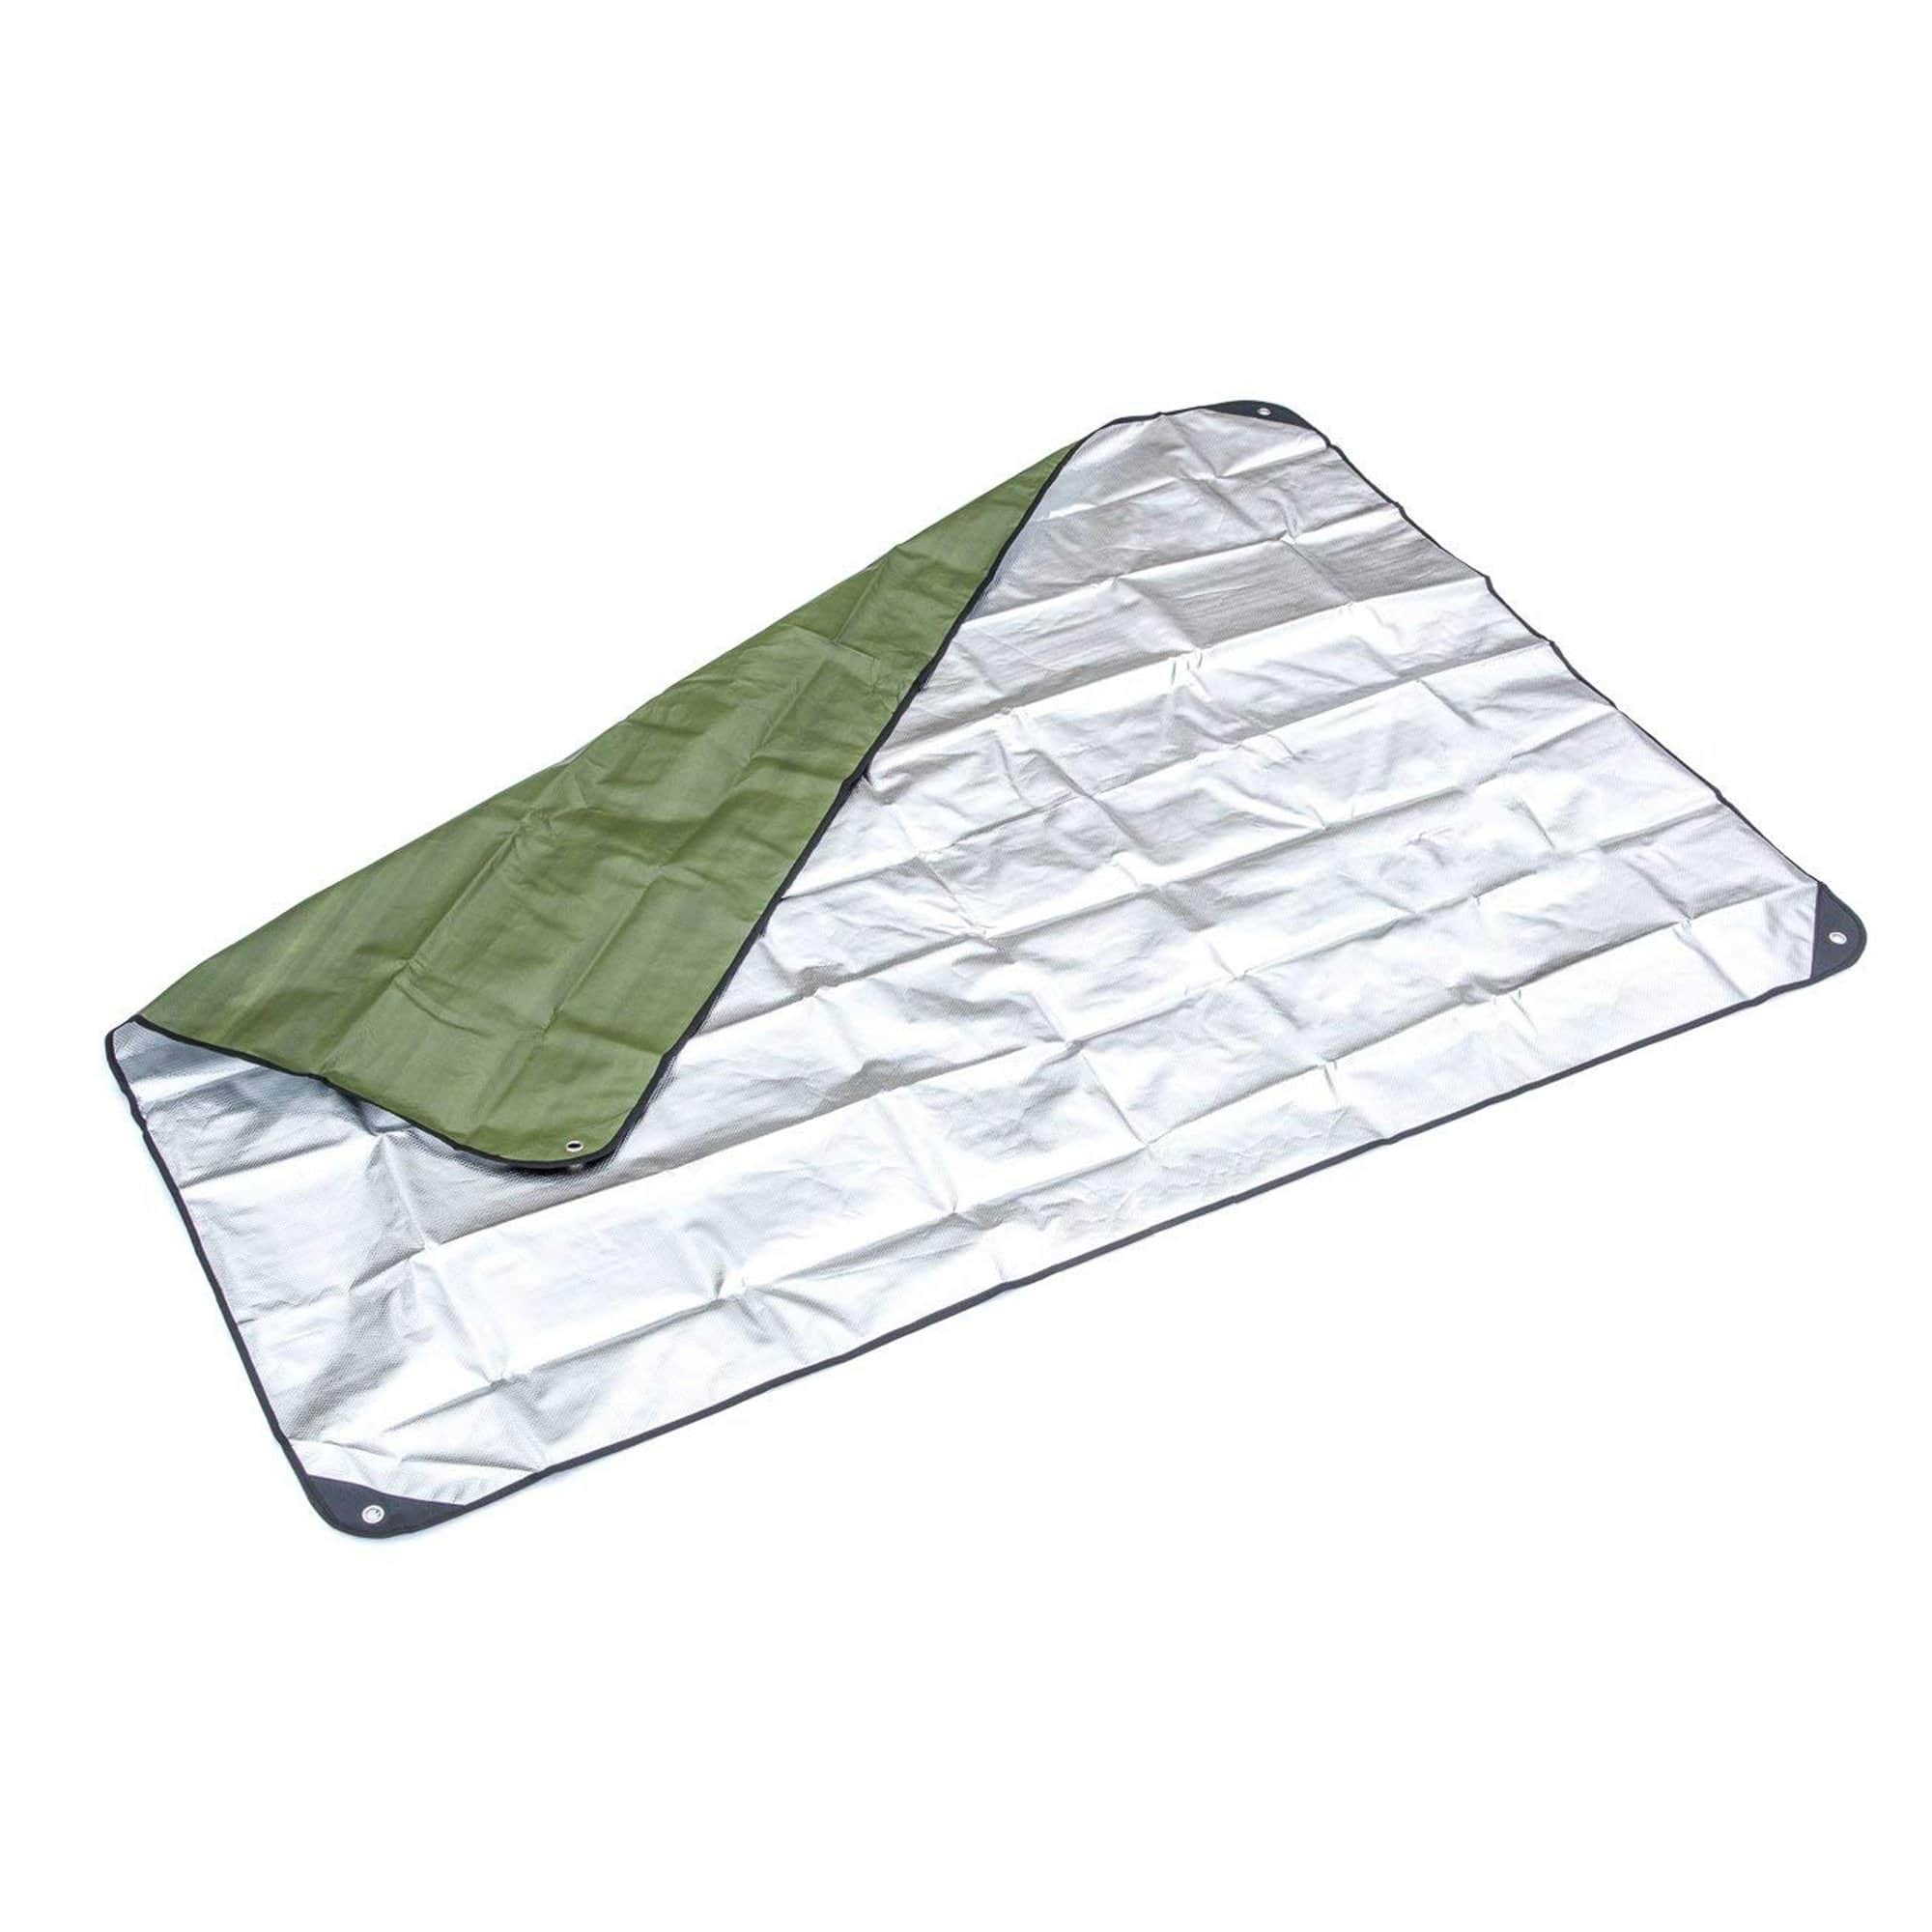 "Green Double-sided Thermal Reflective Blanket - 60"" x 82"""